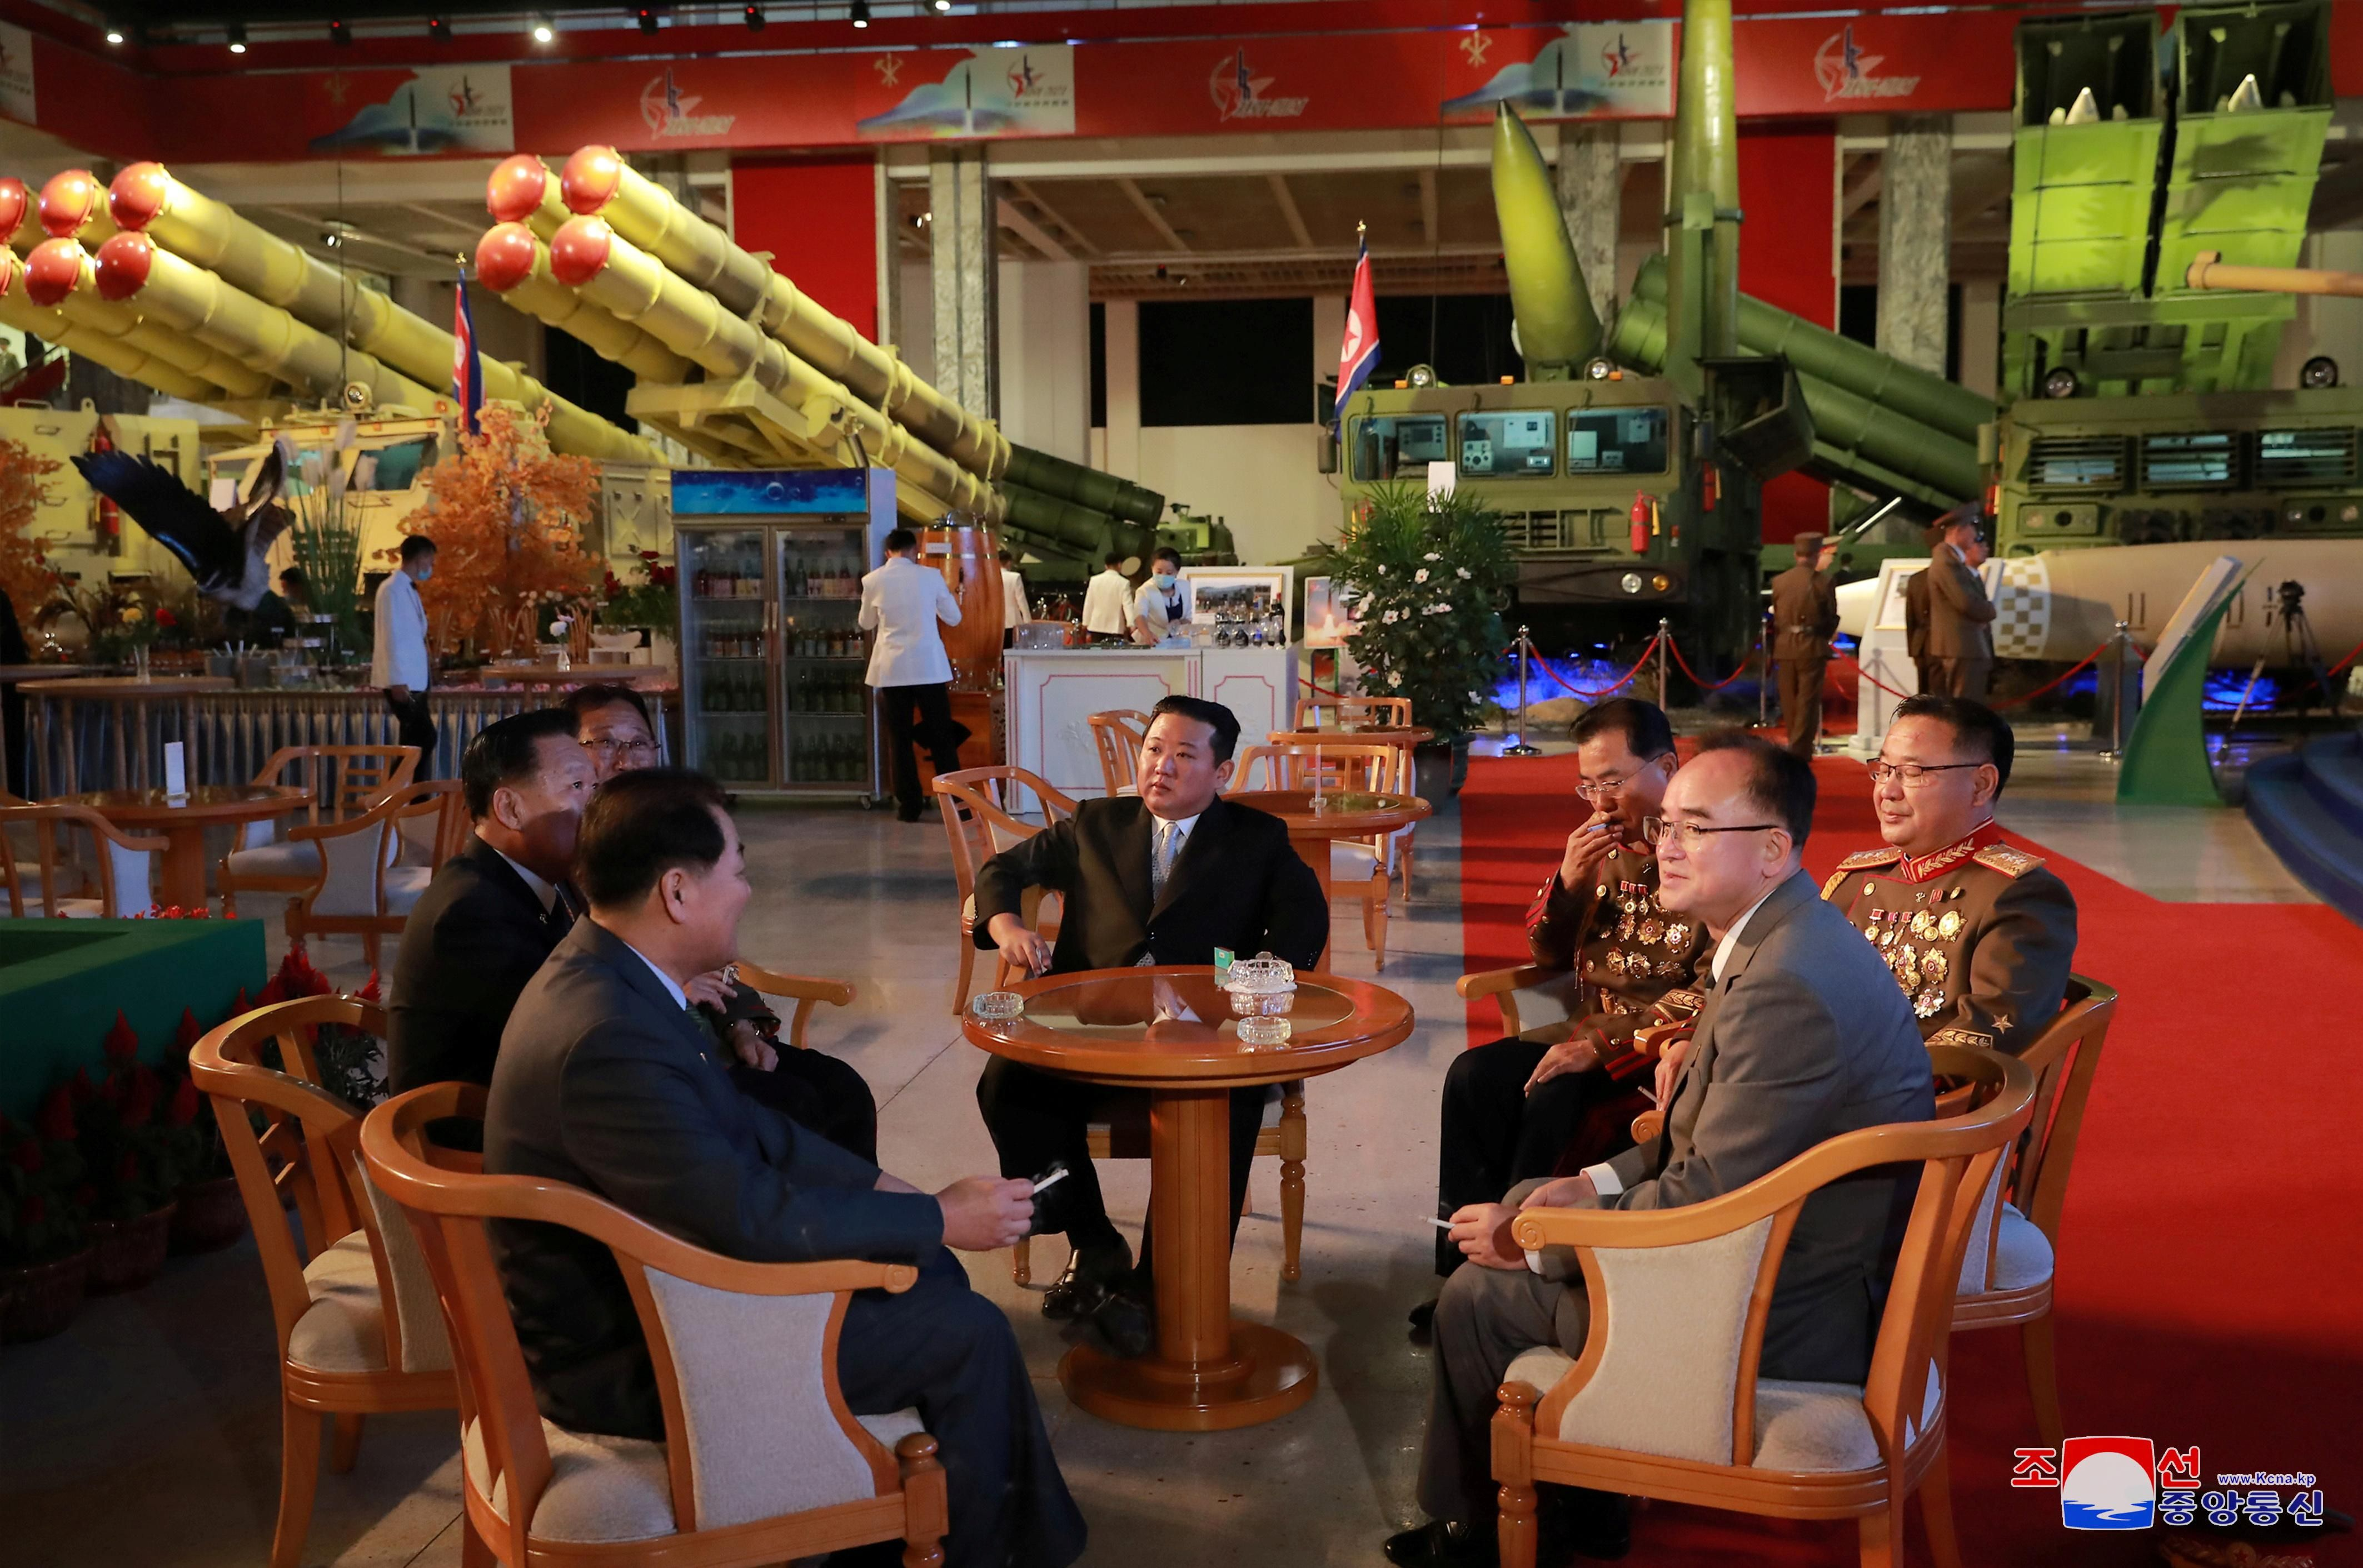 North Korea's leader Kim Jong Un attends the Defence Development Exhibition, in Pyongyang, North Korea, in this undated photo released on October 12, 2021 by North Korea's Korean Central News Agency